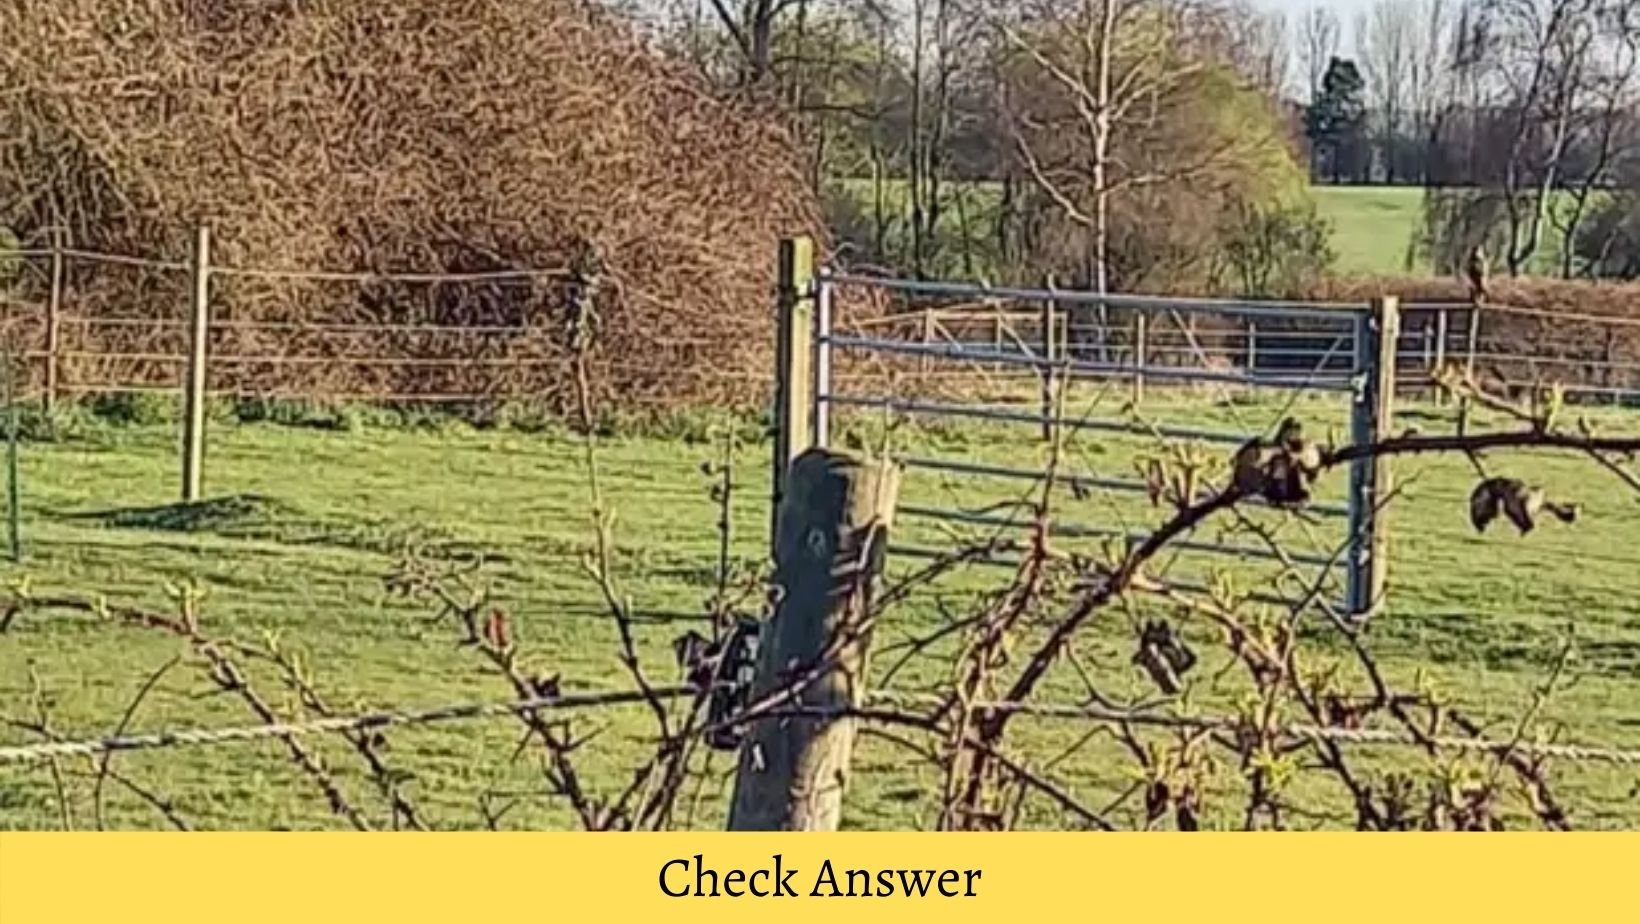 small joys thumbnail 12.jpg?resize=1200,630 - A Bird Is Camouflaged In This Photograph, Can You Spot It?